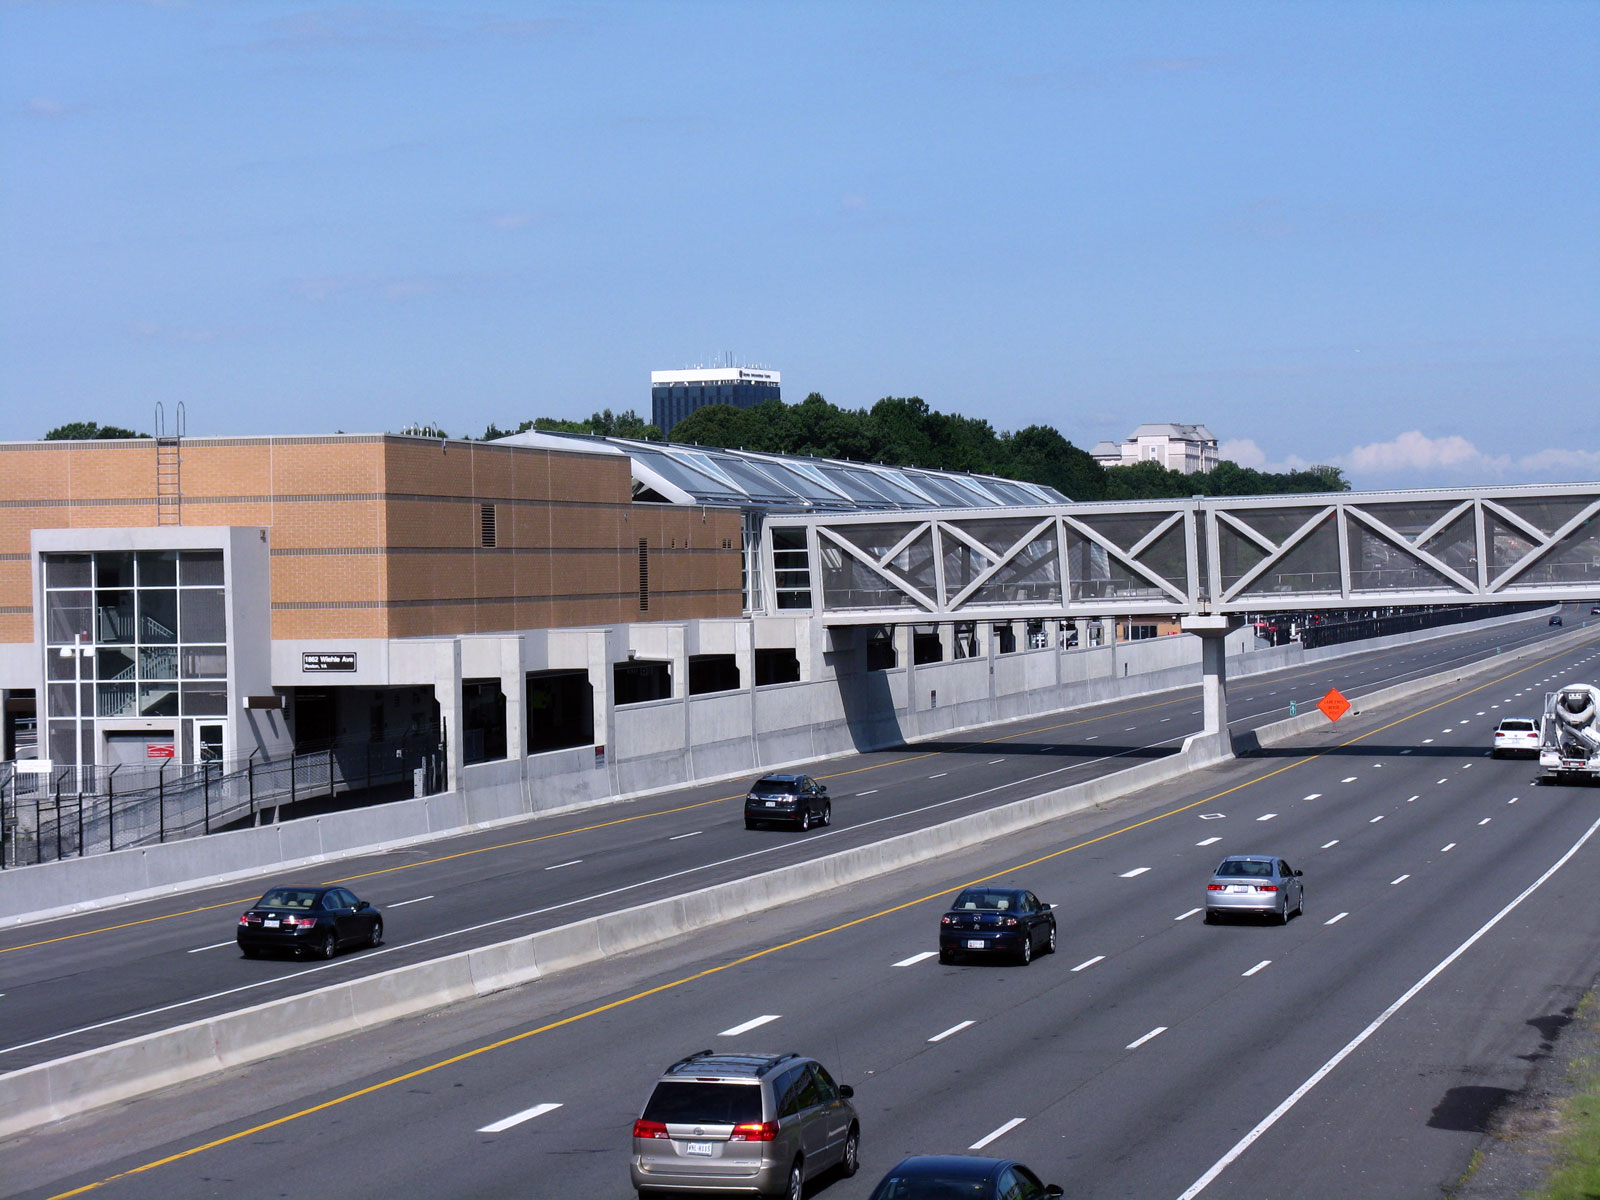 At Metro's Wiehle-Reston East station, weekend parking will stay free